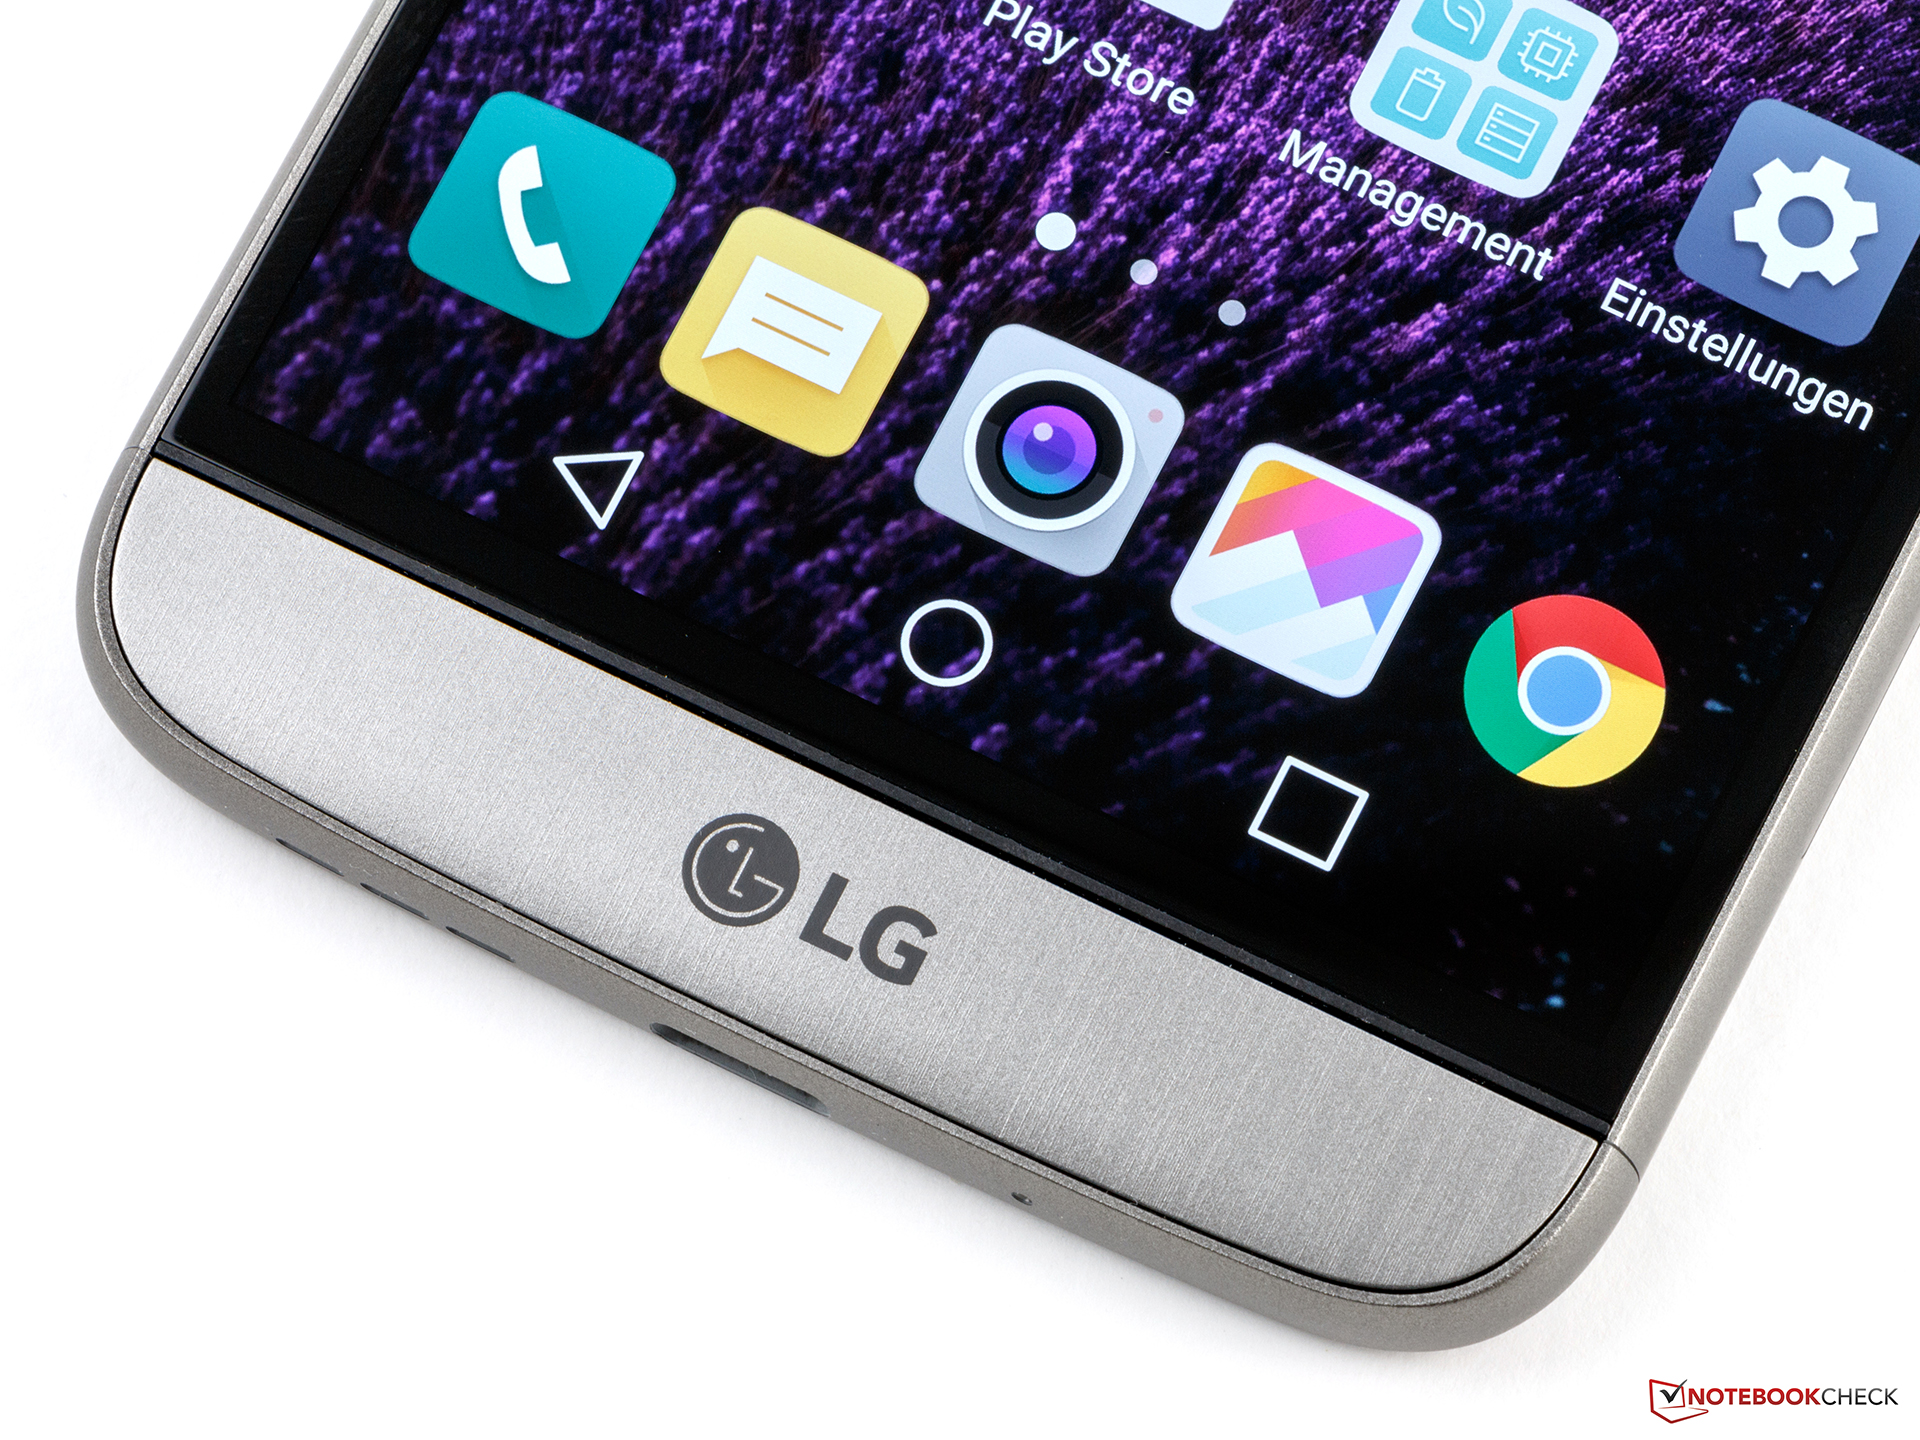 Lg G5 Smartphone Review Reviews Se Gold 32 Gb 3 Full Resolution